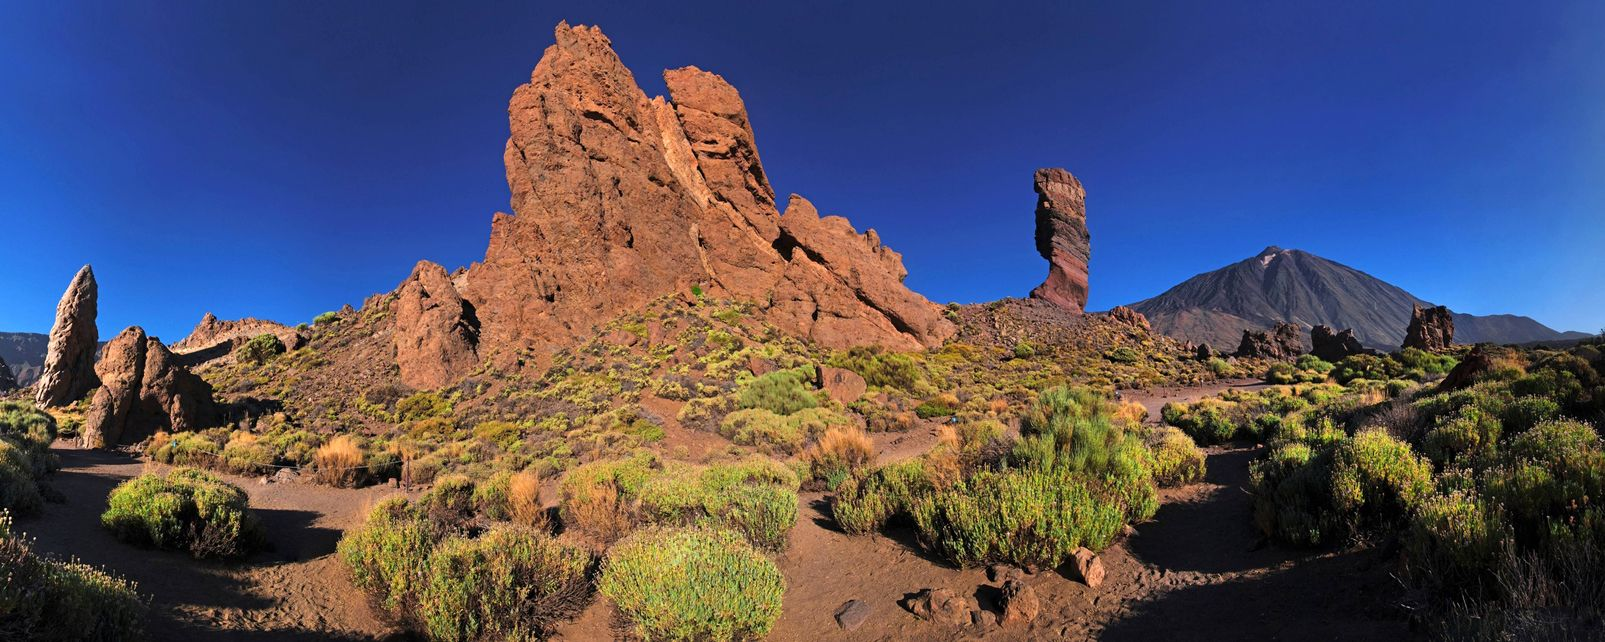 Teide National Park, Tenerife, Tenerife - Del Teide National Park, Landscapes, Santa Cruz de Tenerife, The Canary Islands